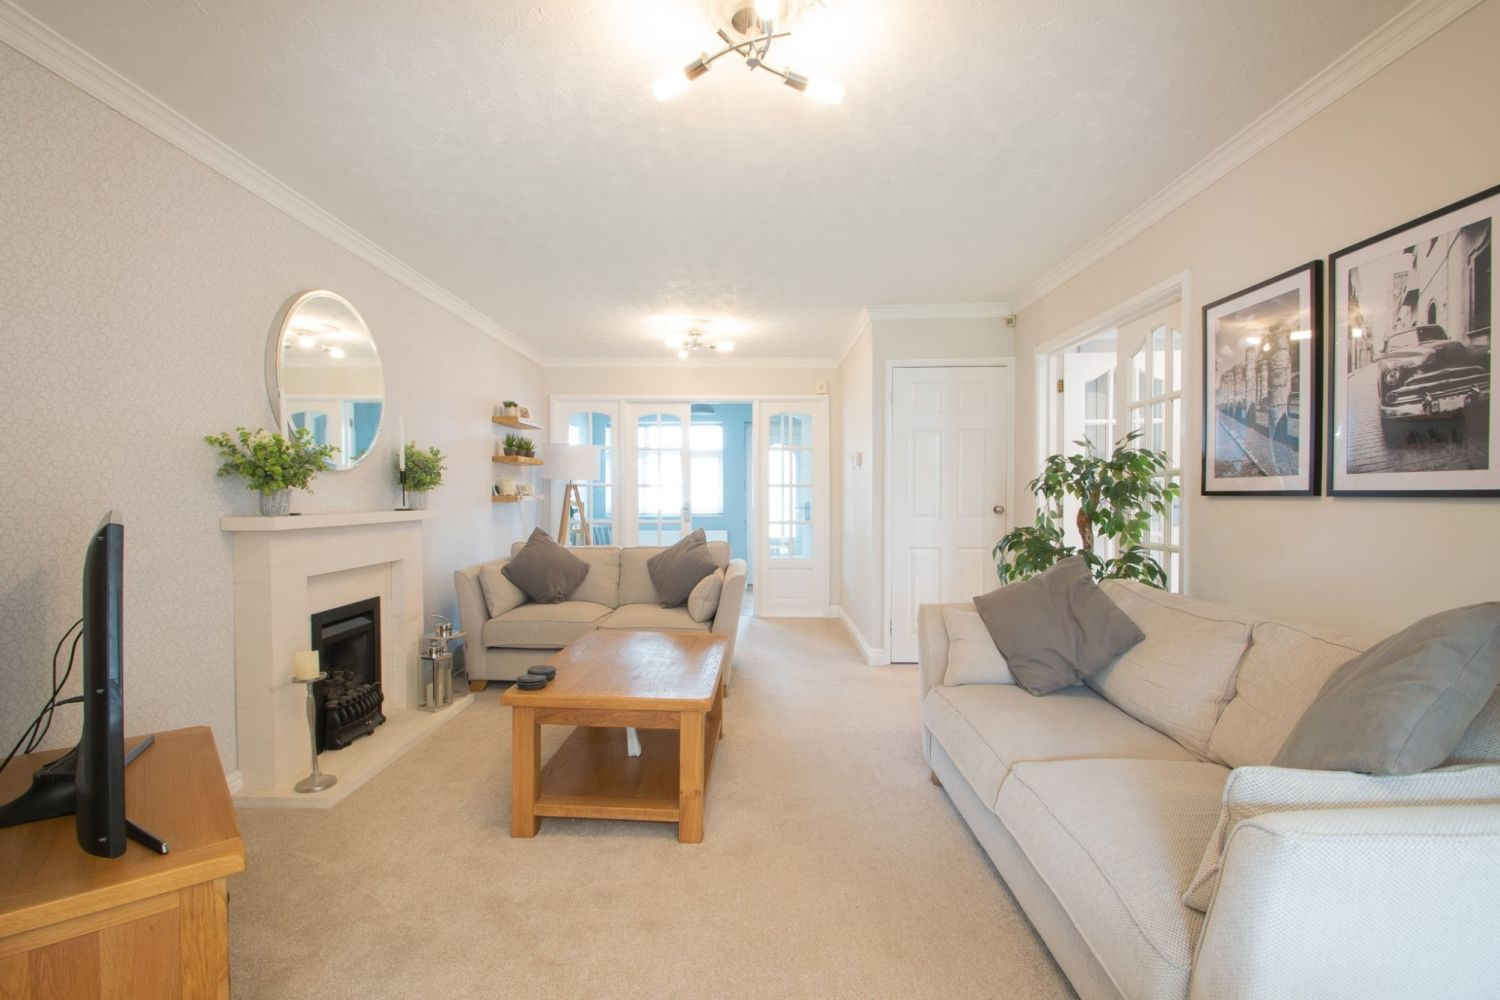 3 bed detached for sale in Clyde Avenue, Halesowen  - Property Image 5